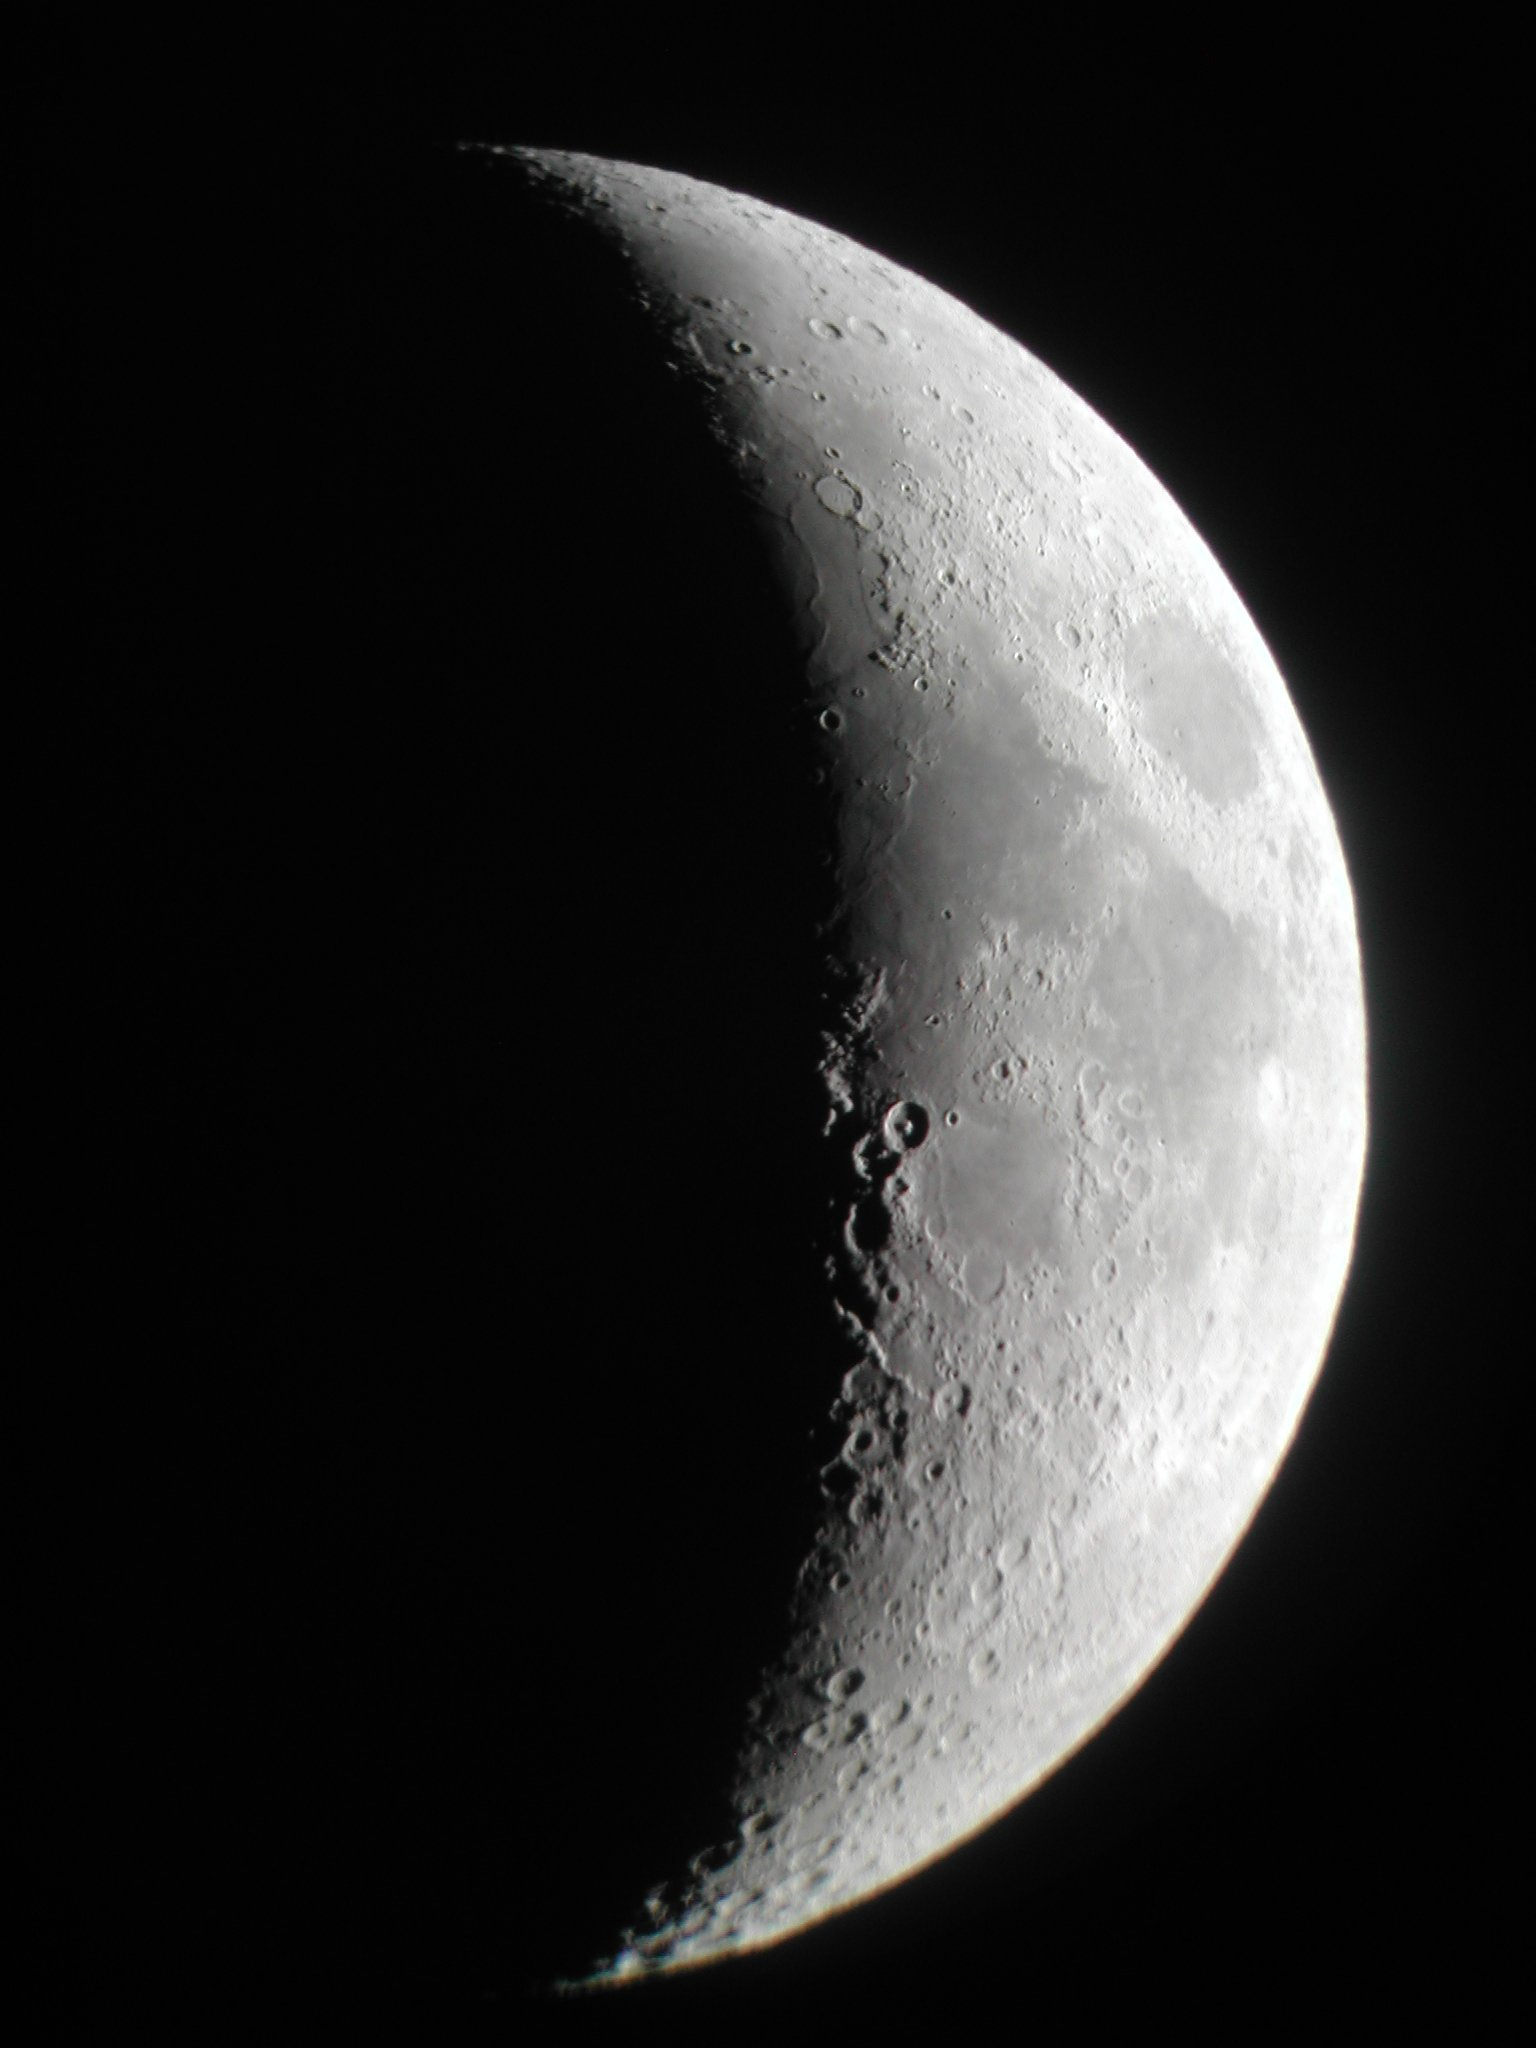 Moon is Largest Natural Satellite